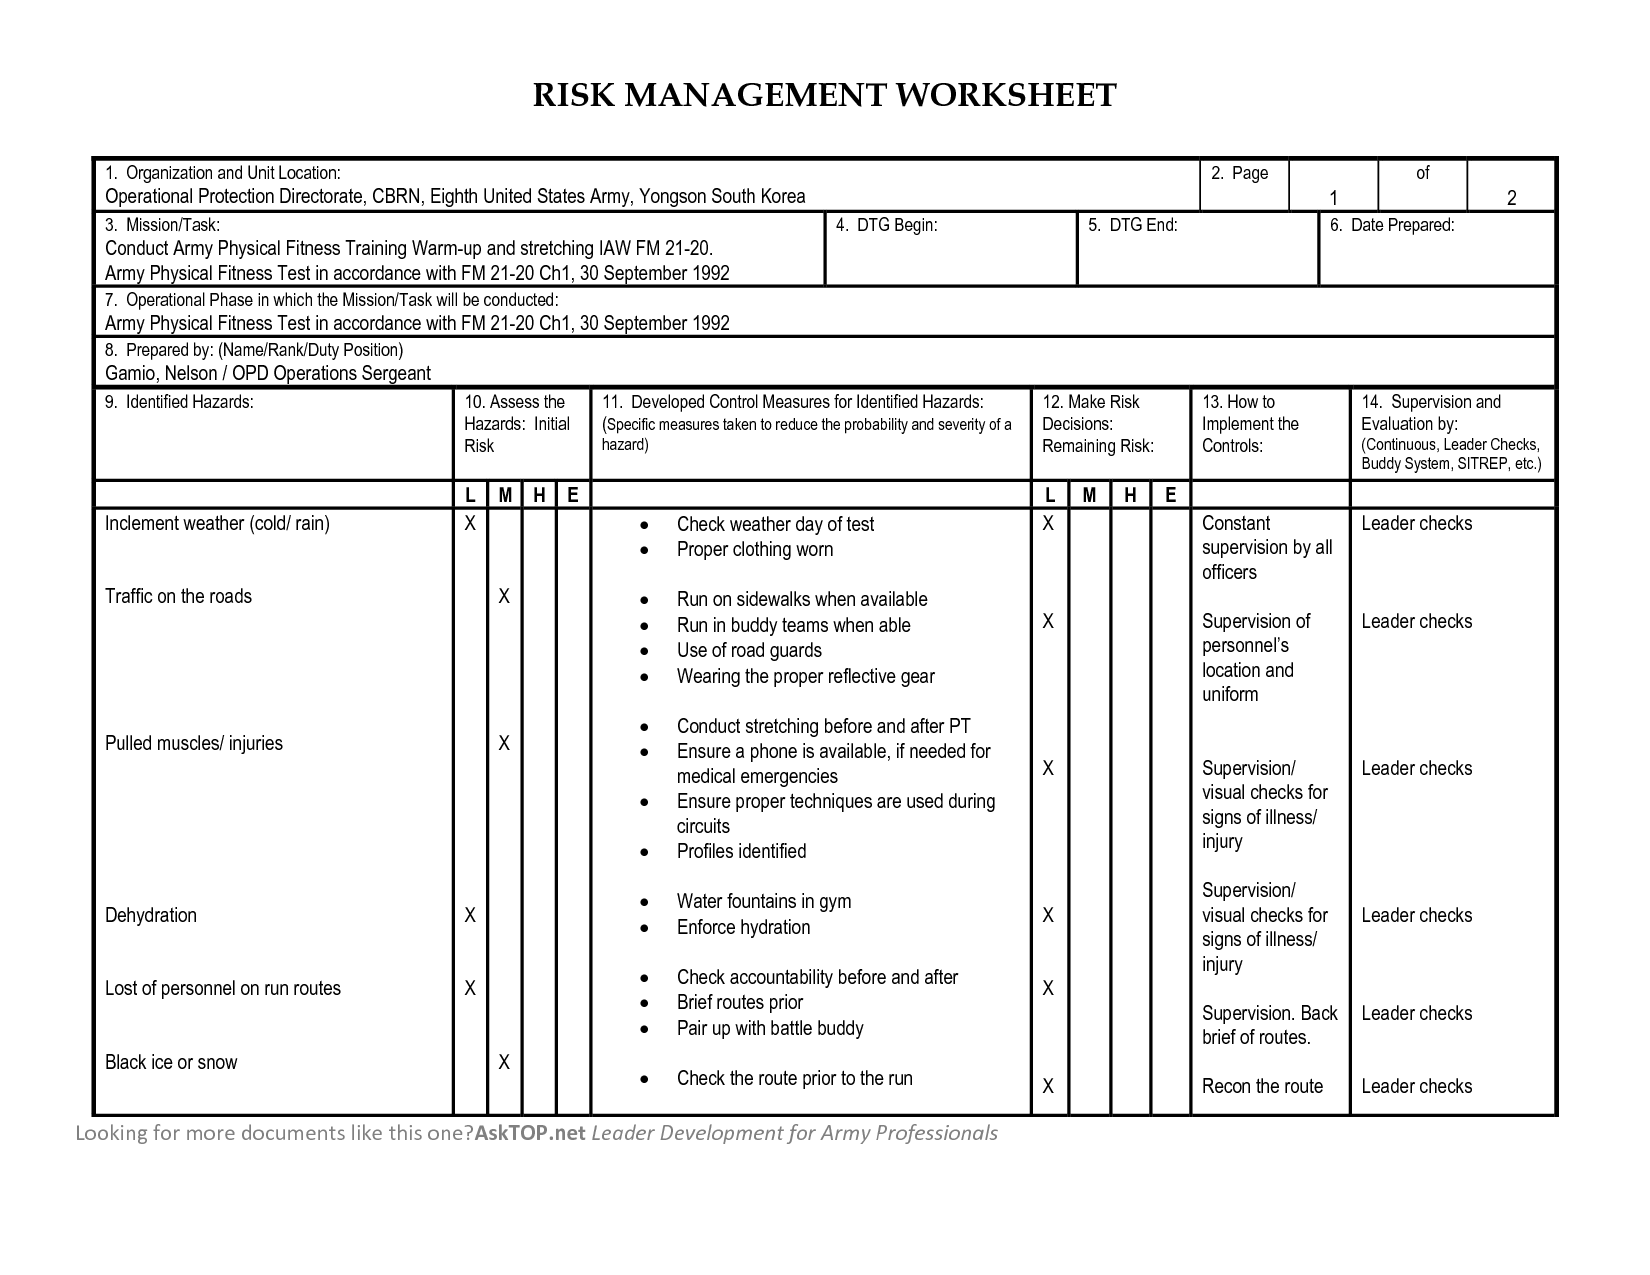 Deliberate Risk Assessment Matrix Worksheet Pictures To Pin